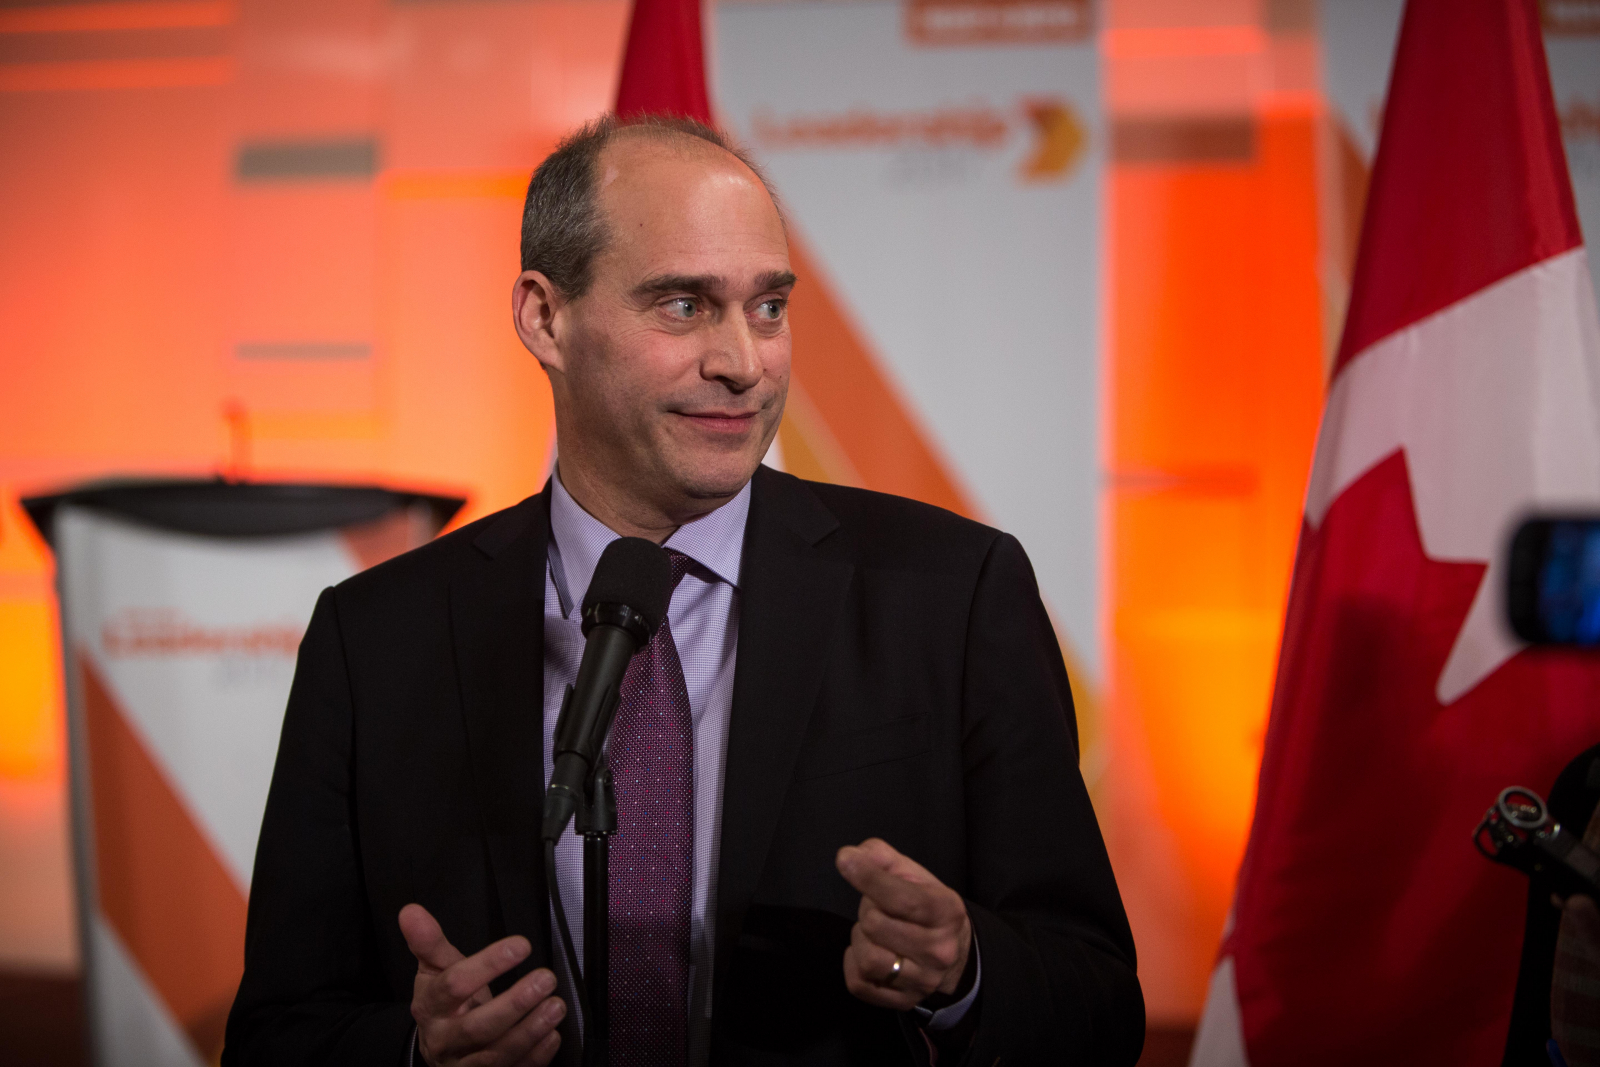 NDP leadership hopeful Guy Caron speaks to reporters in Ottawa on March 12, 2017.